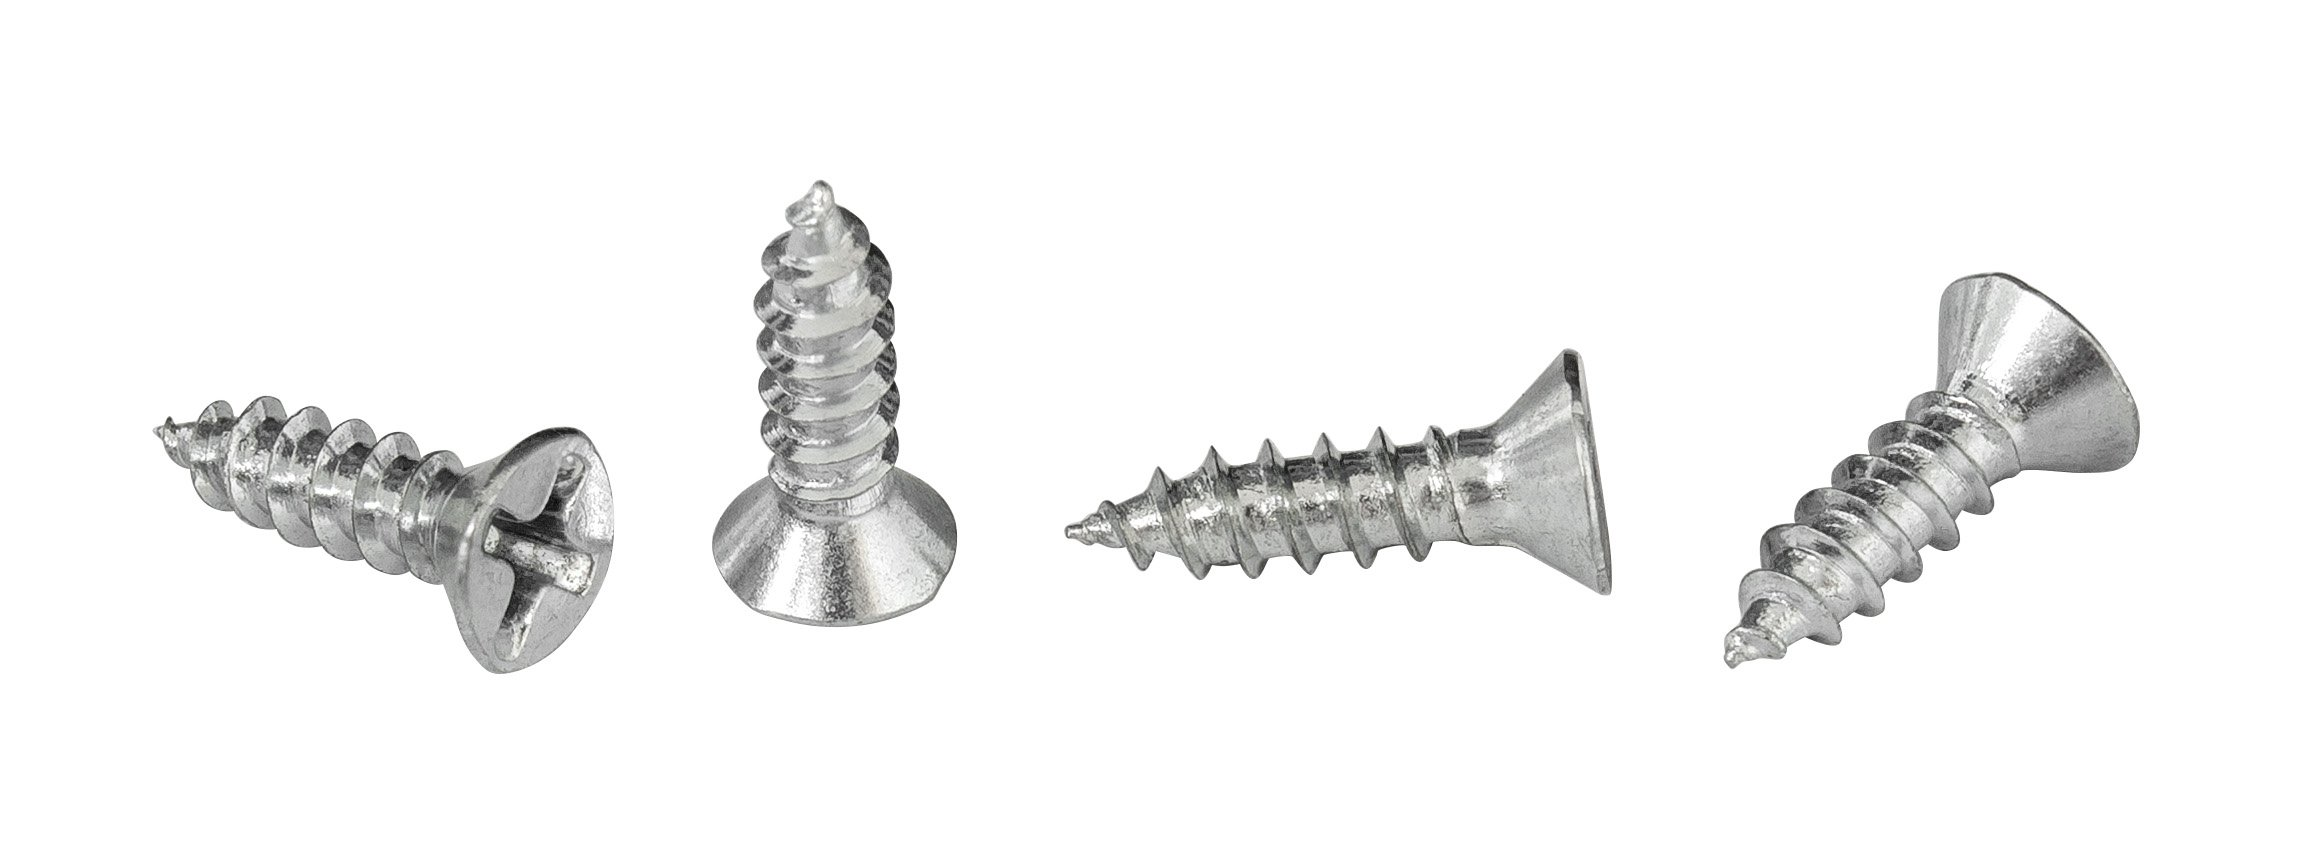 """#6 x 1/2"""" Phillips Flat Head Countersink Screw, Zinc-Plated Steel for Attaches Sheet Metal to Wood, Plastic, or Fiberglass - Box of 100"""